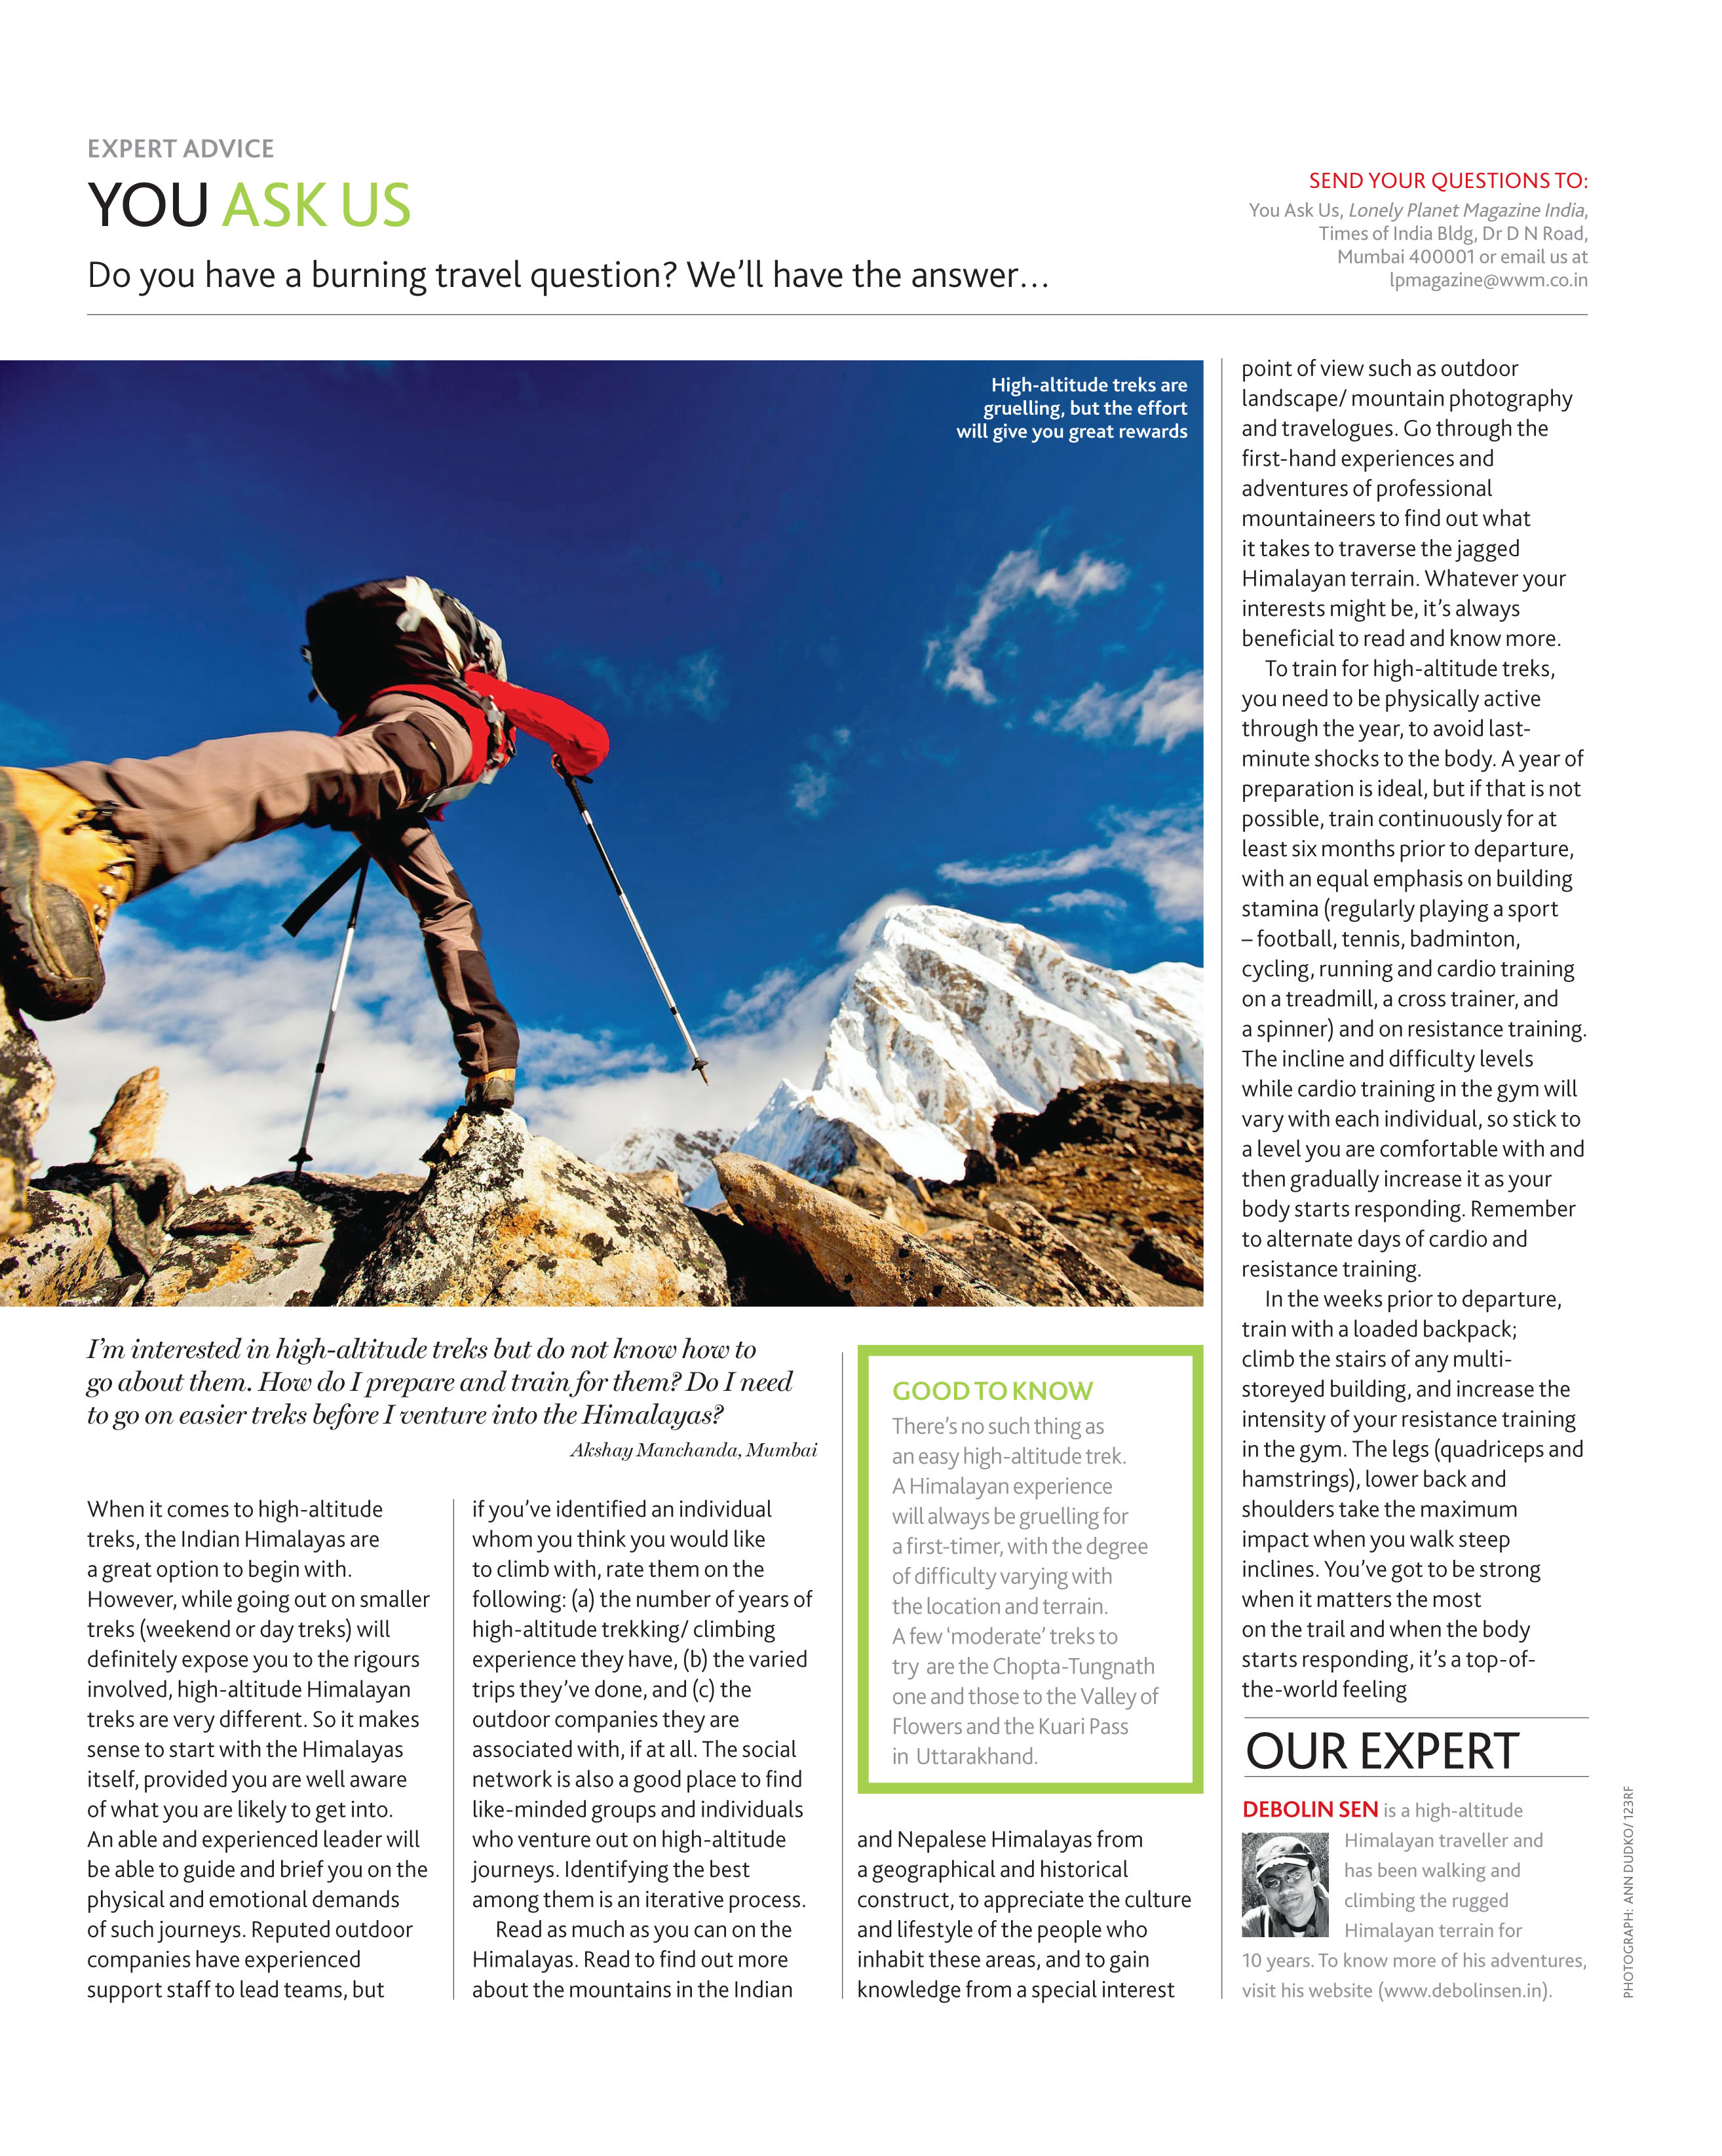 Article in Lonely Planet Magazine India. Dec 2013.